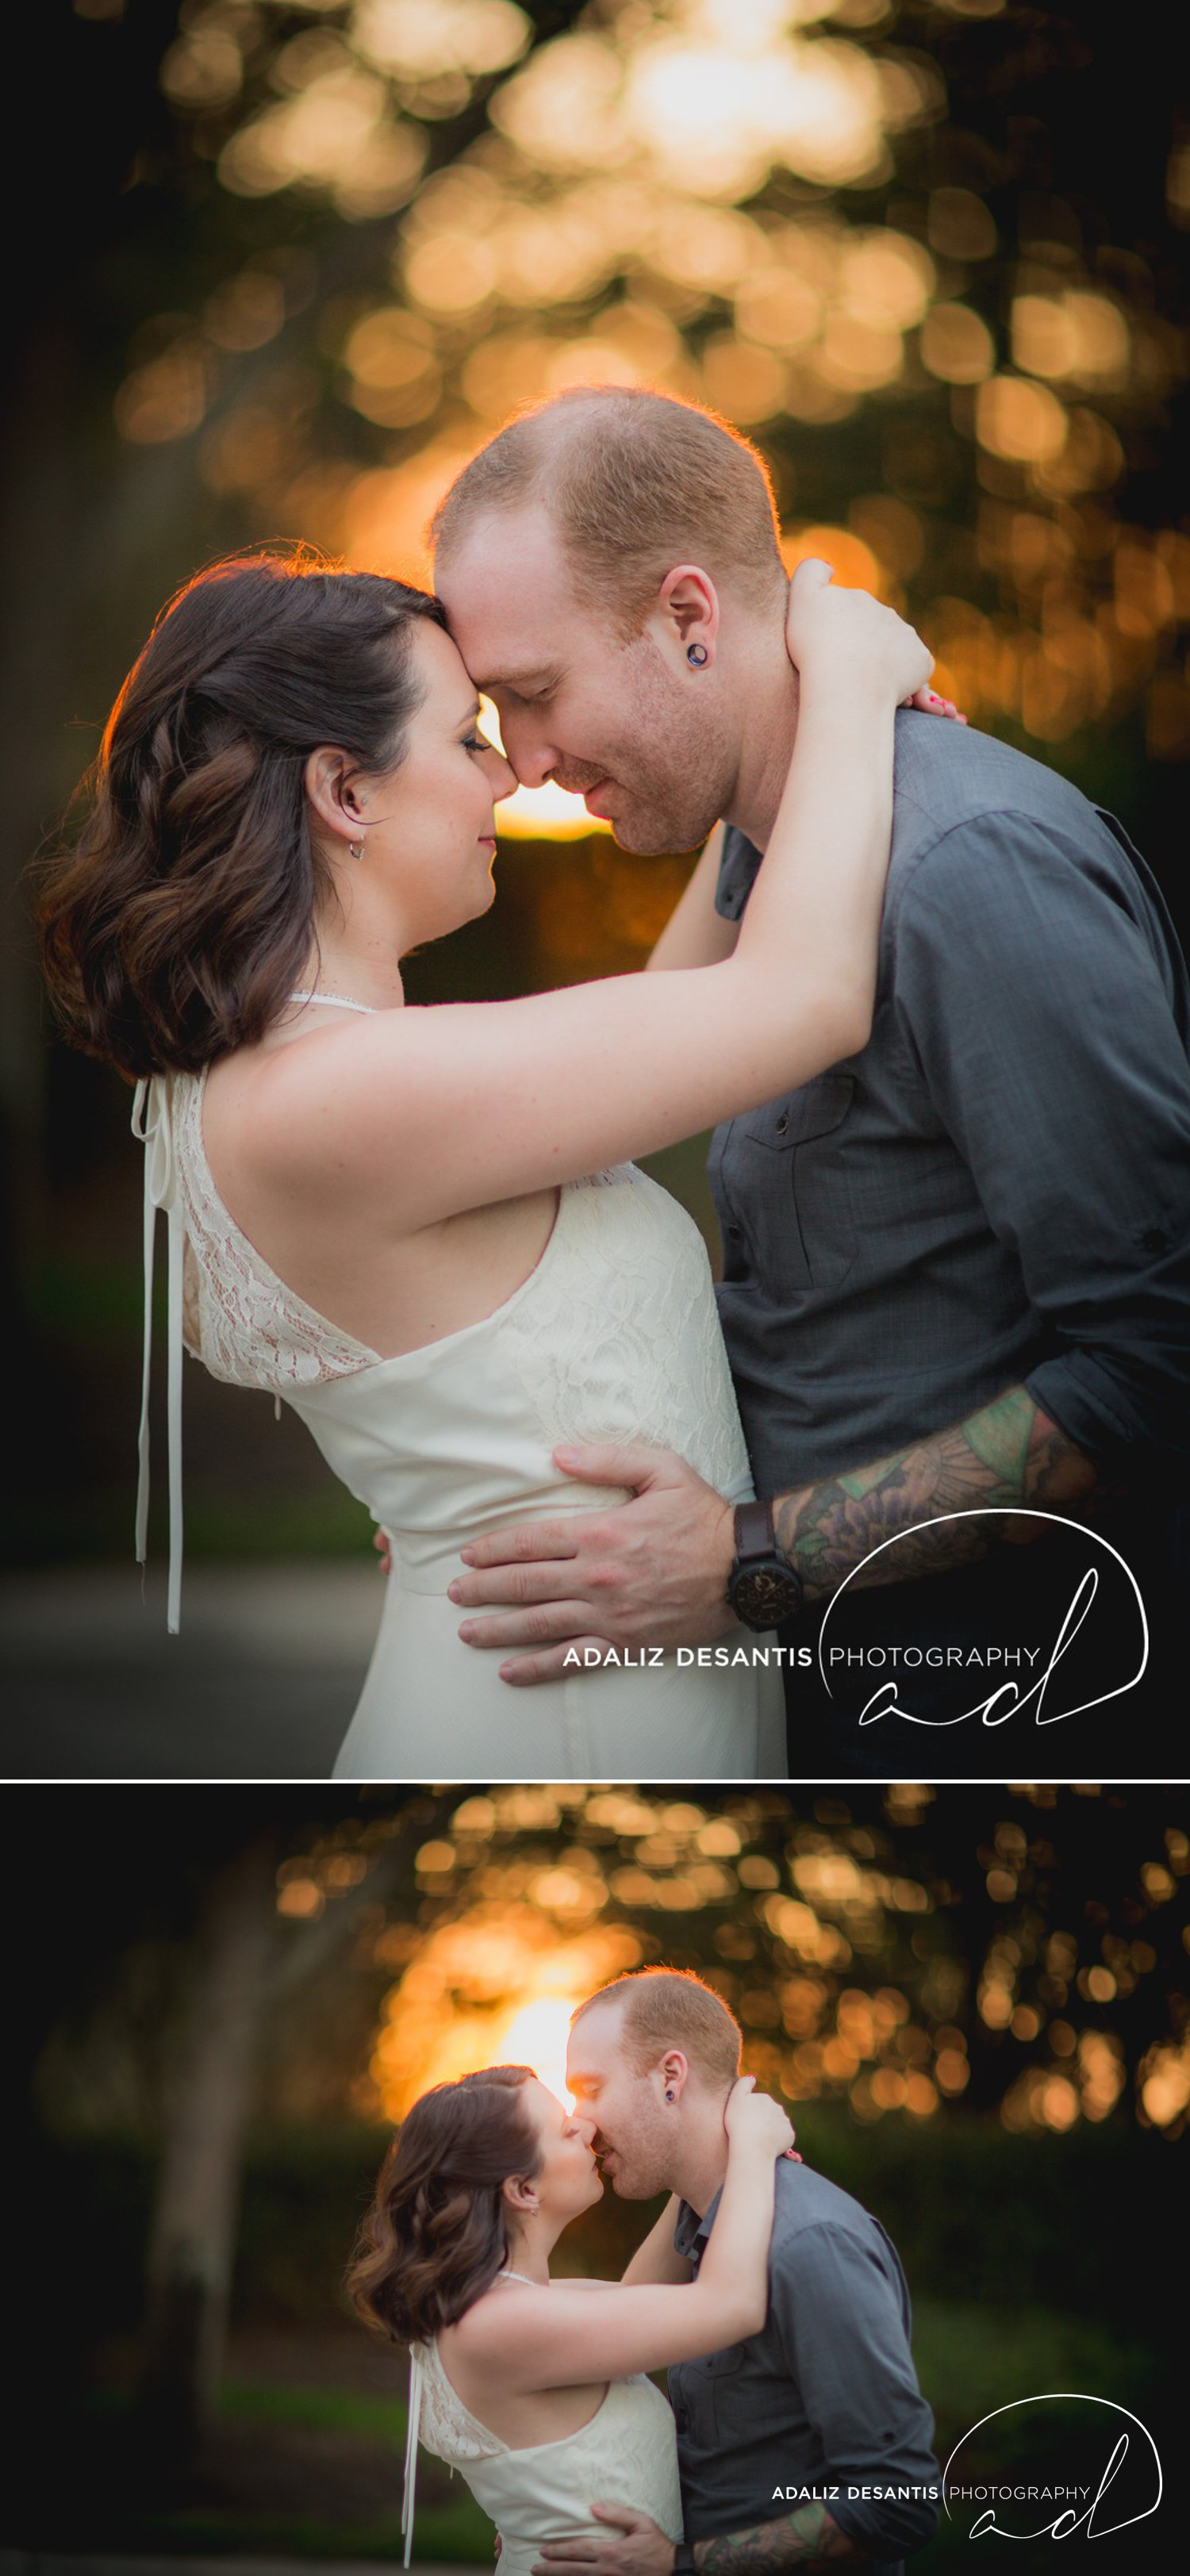 parkland golf and country club engagement session fort lauderdale south flrida 16.jpg